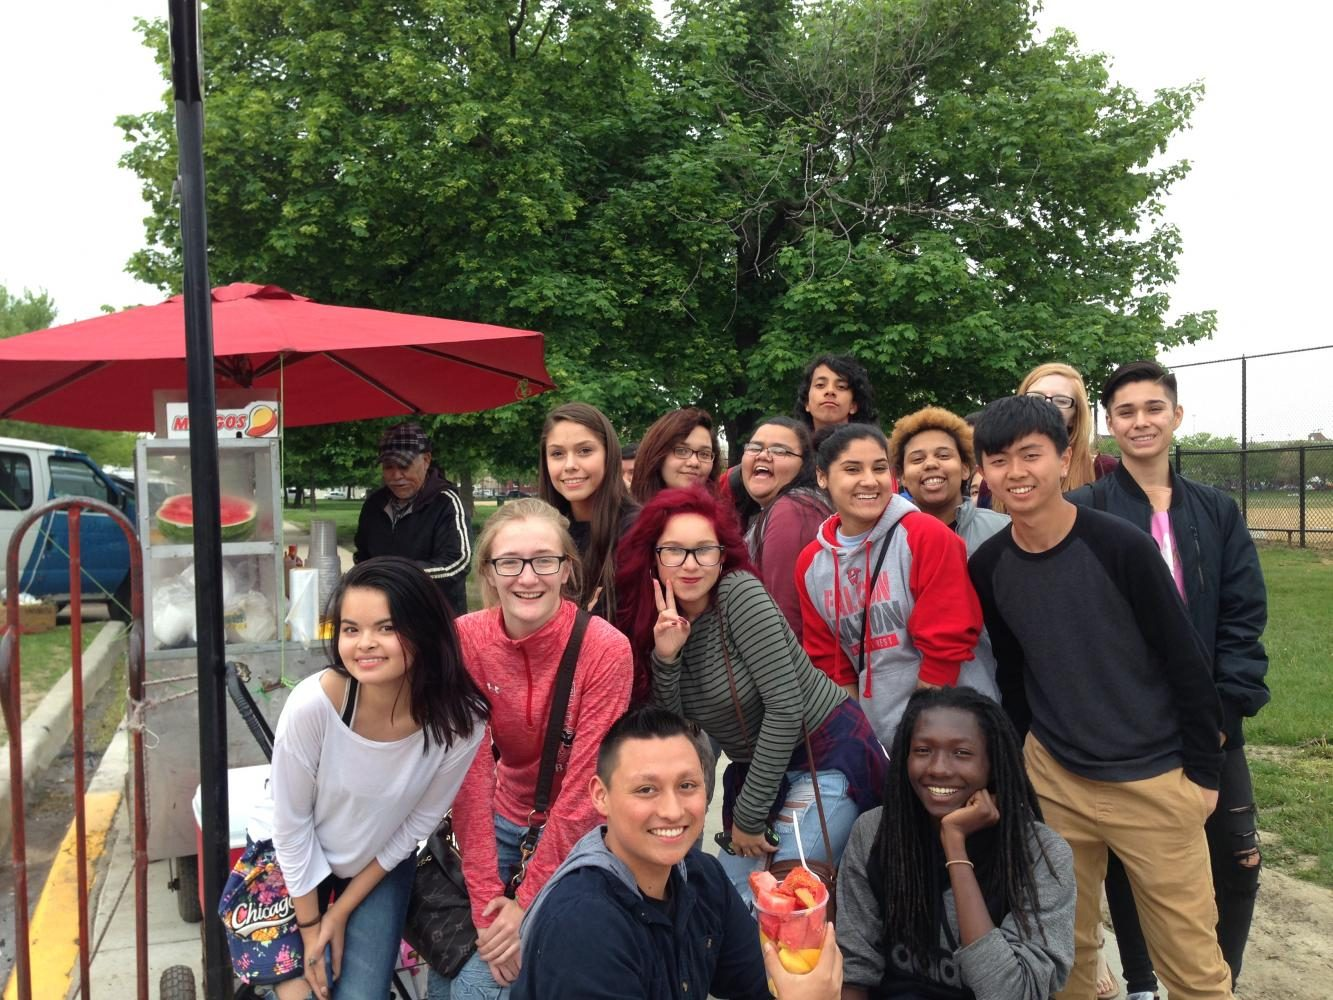 Spanish+Club+takes+a+break+at+a+fruit+stand+on+their+2016+Chicago+trip.